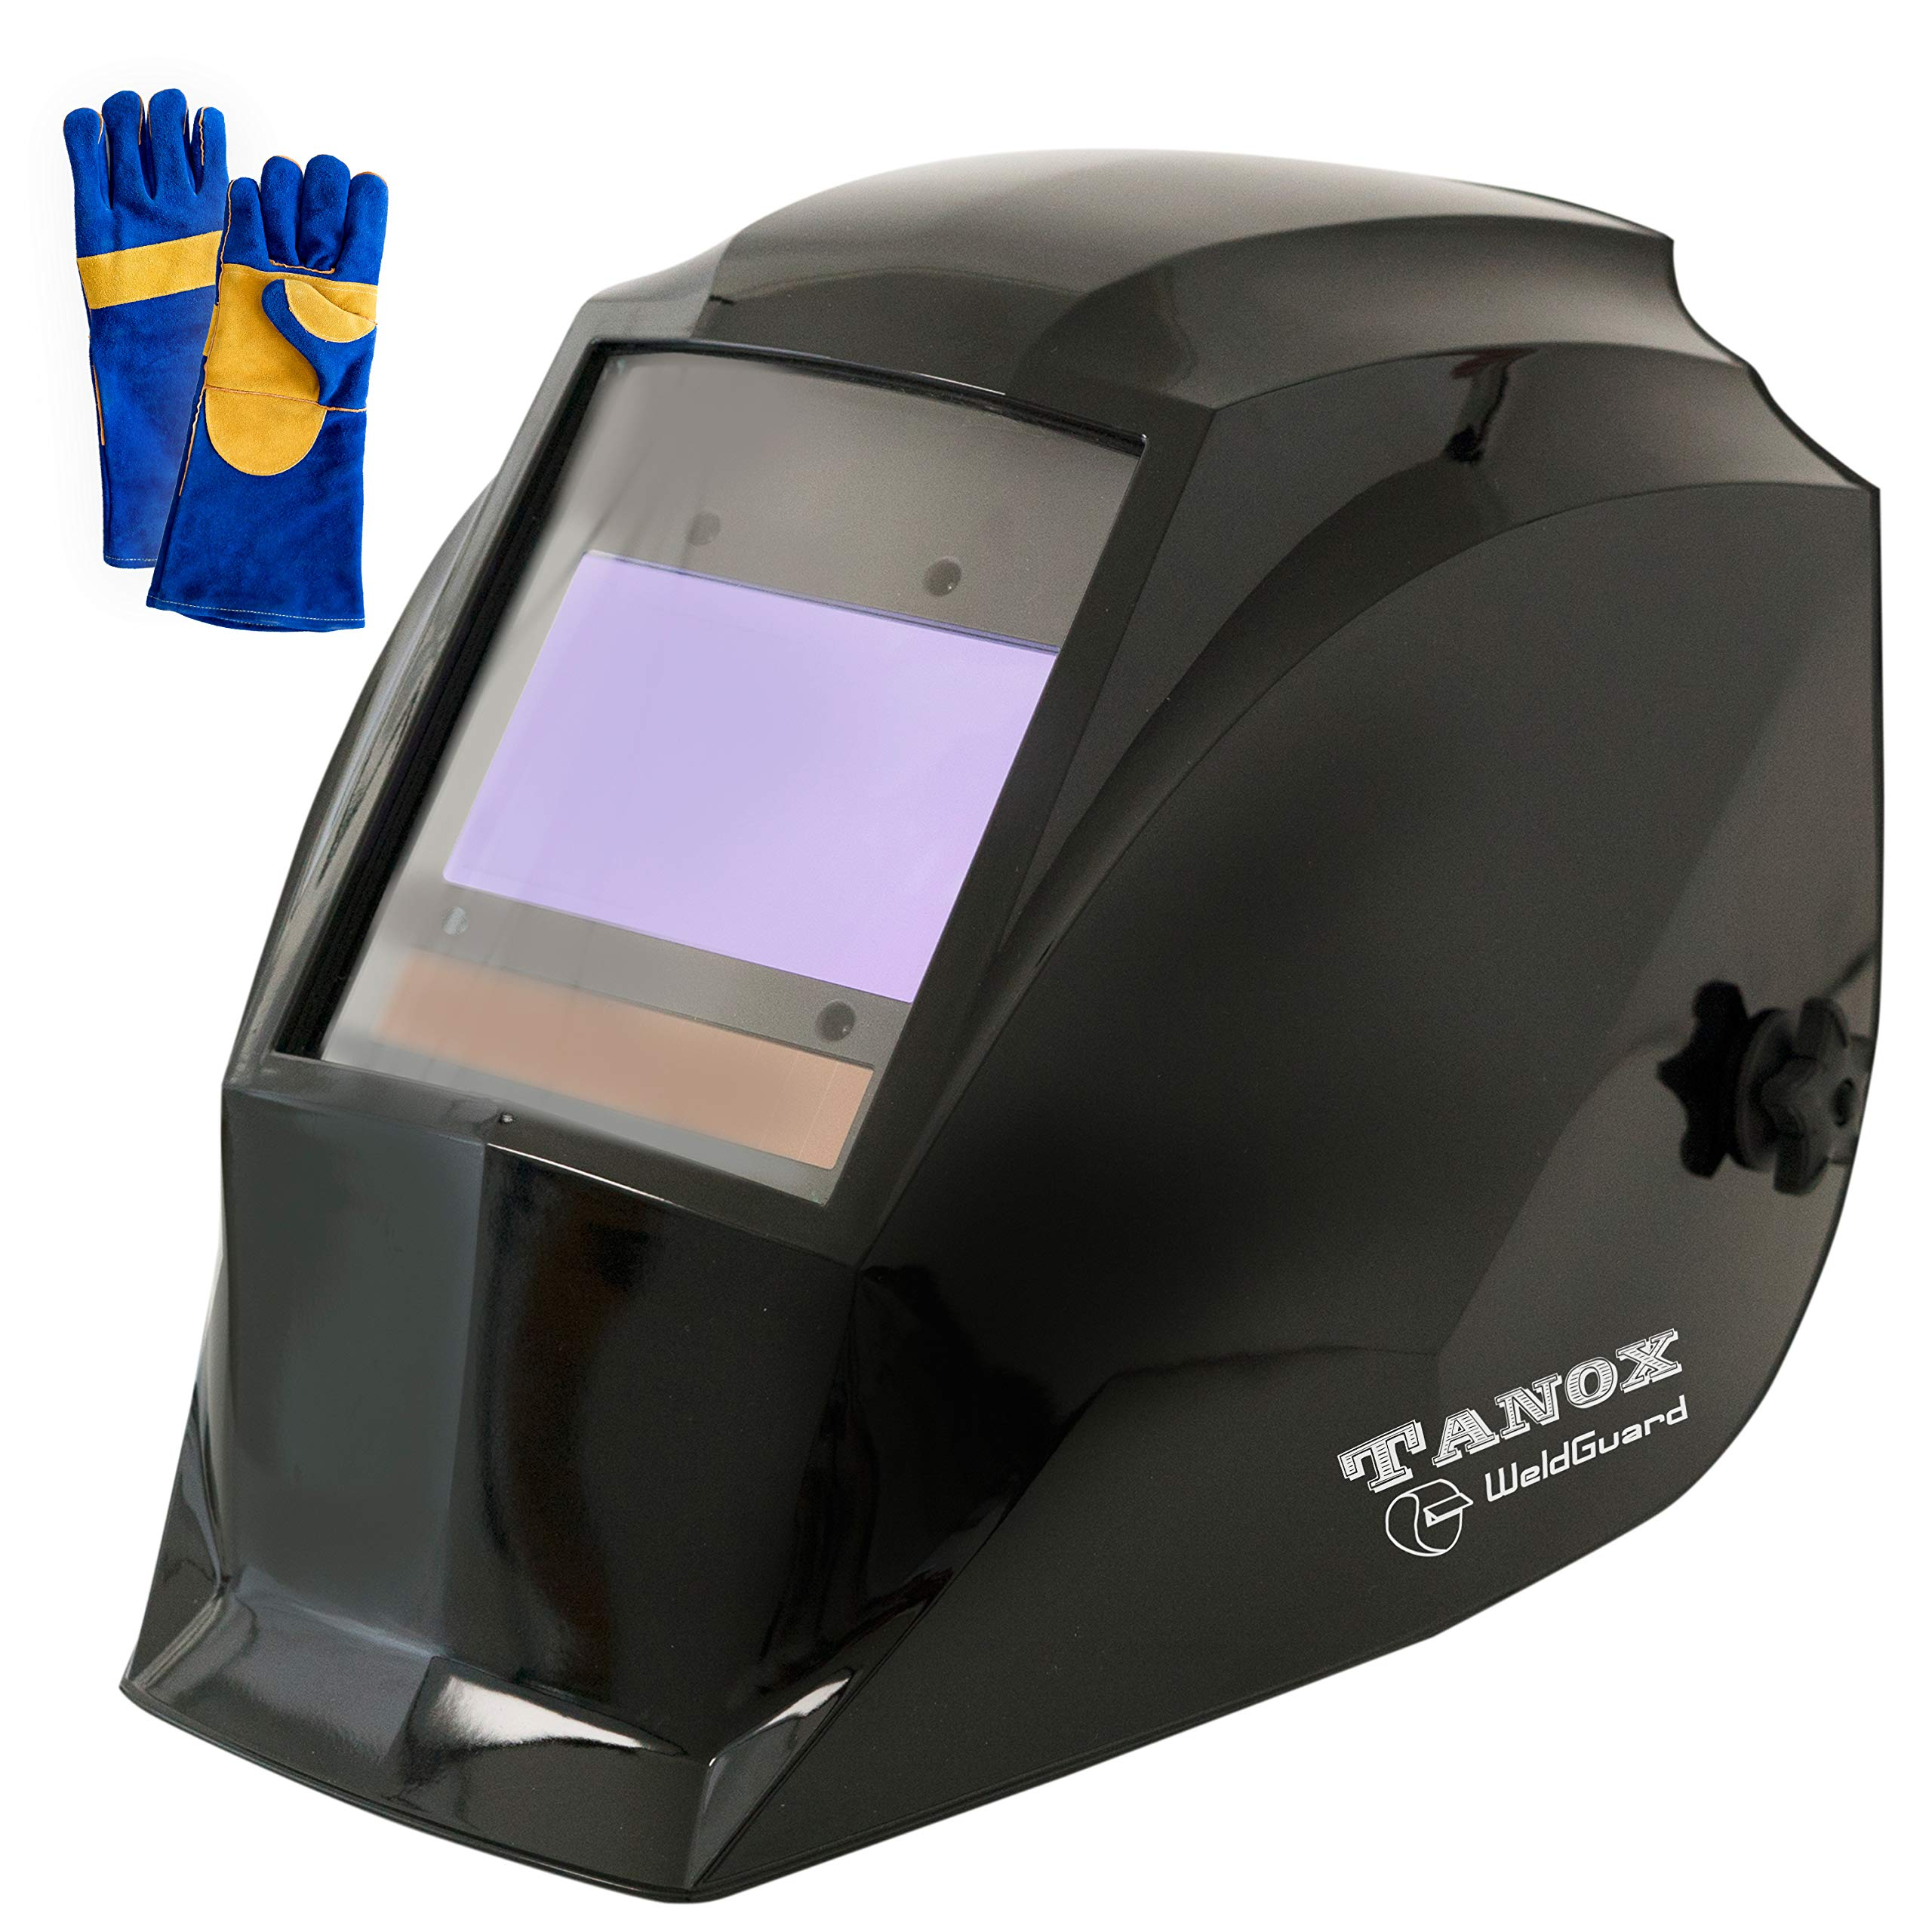 Digital Display auto Darkening Solar Powered Welding Helmet ADF-210S, Solar Shade Lens, Tig Mig MMA, Adjustable Range 4/9-1316 Bonus 16'' Fire Retardant Welding Gloves, Carrying Bag and spare lens